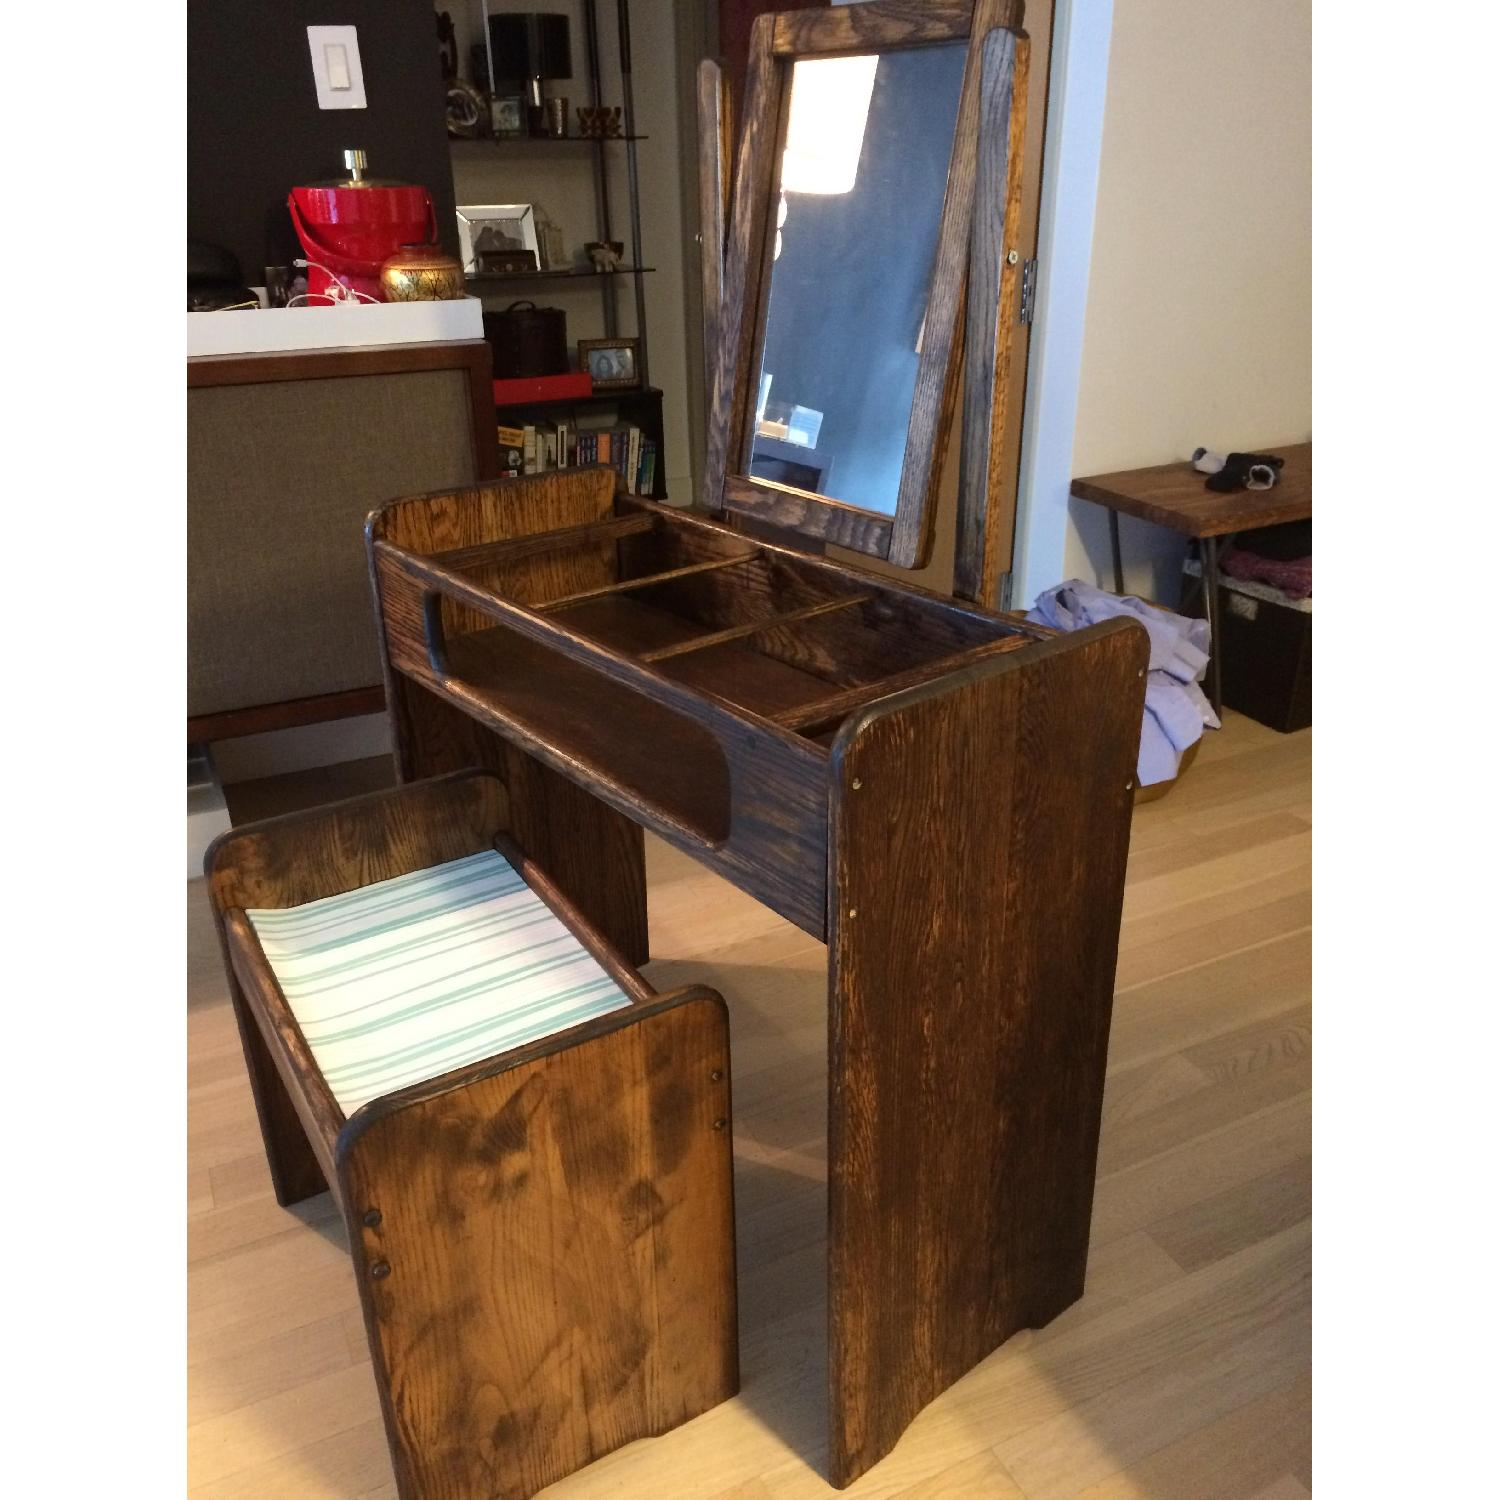 Make-Up/Vanity Table w/ Bench - image-4